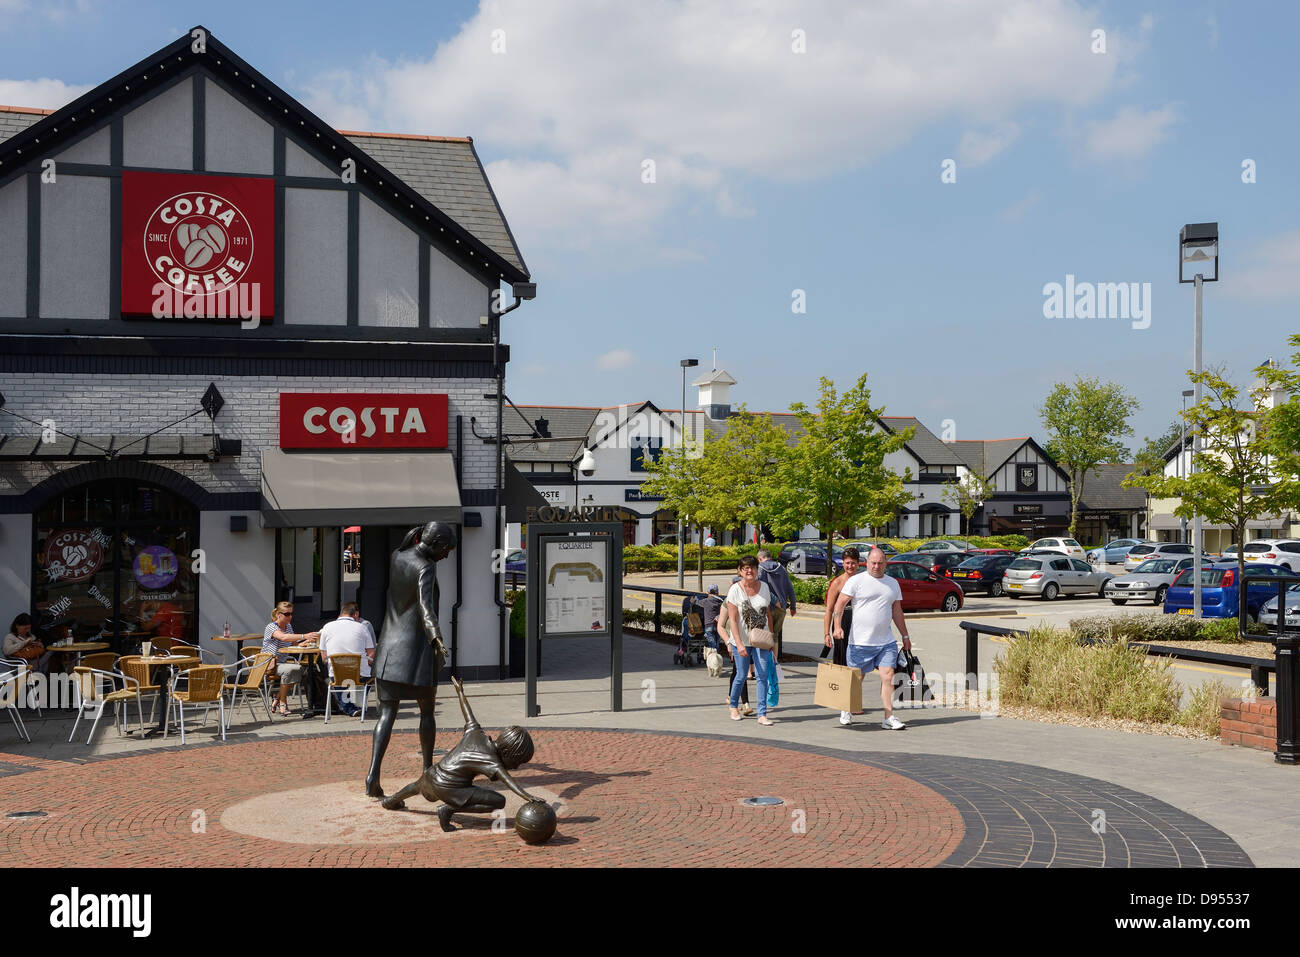 Shopping Outlet Immagini e Fotos Stock Alamy